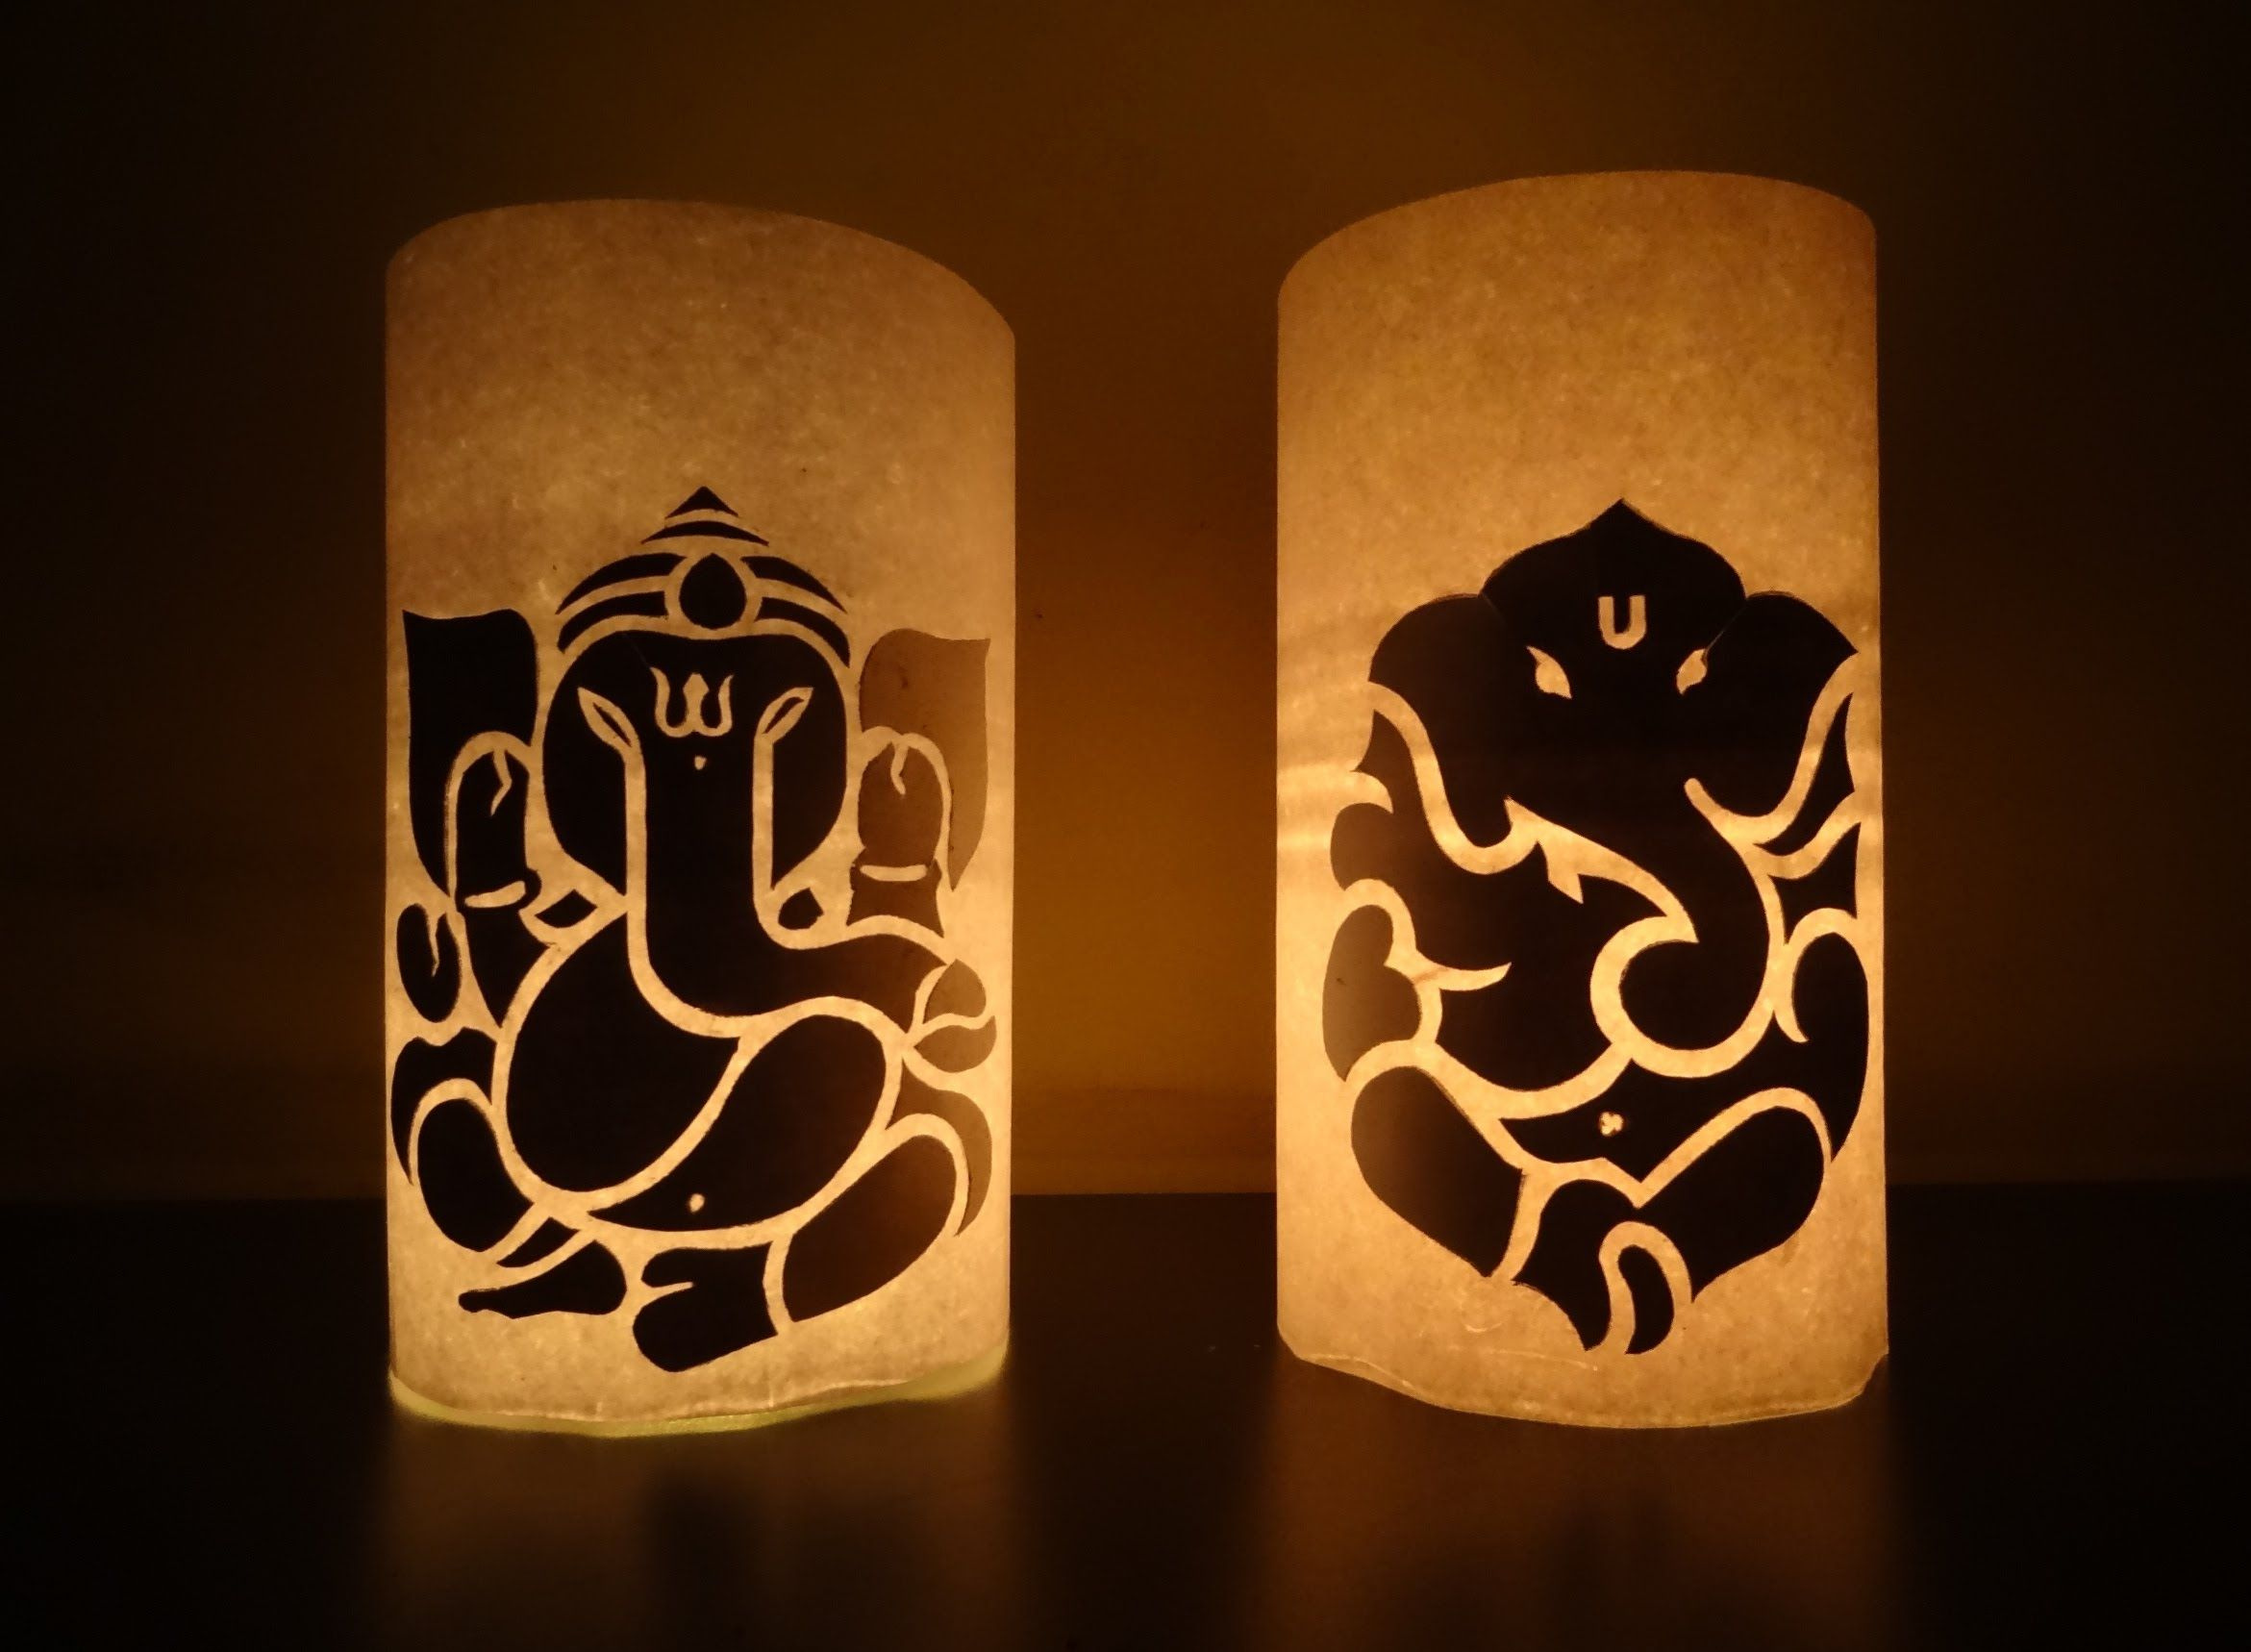 paper crafts diwali decoration ideas candle illuminated lord